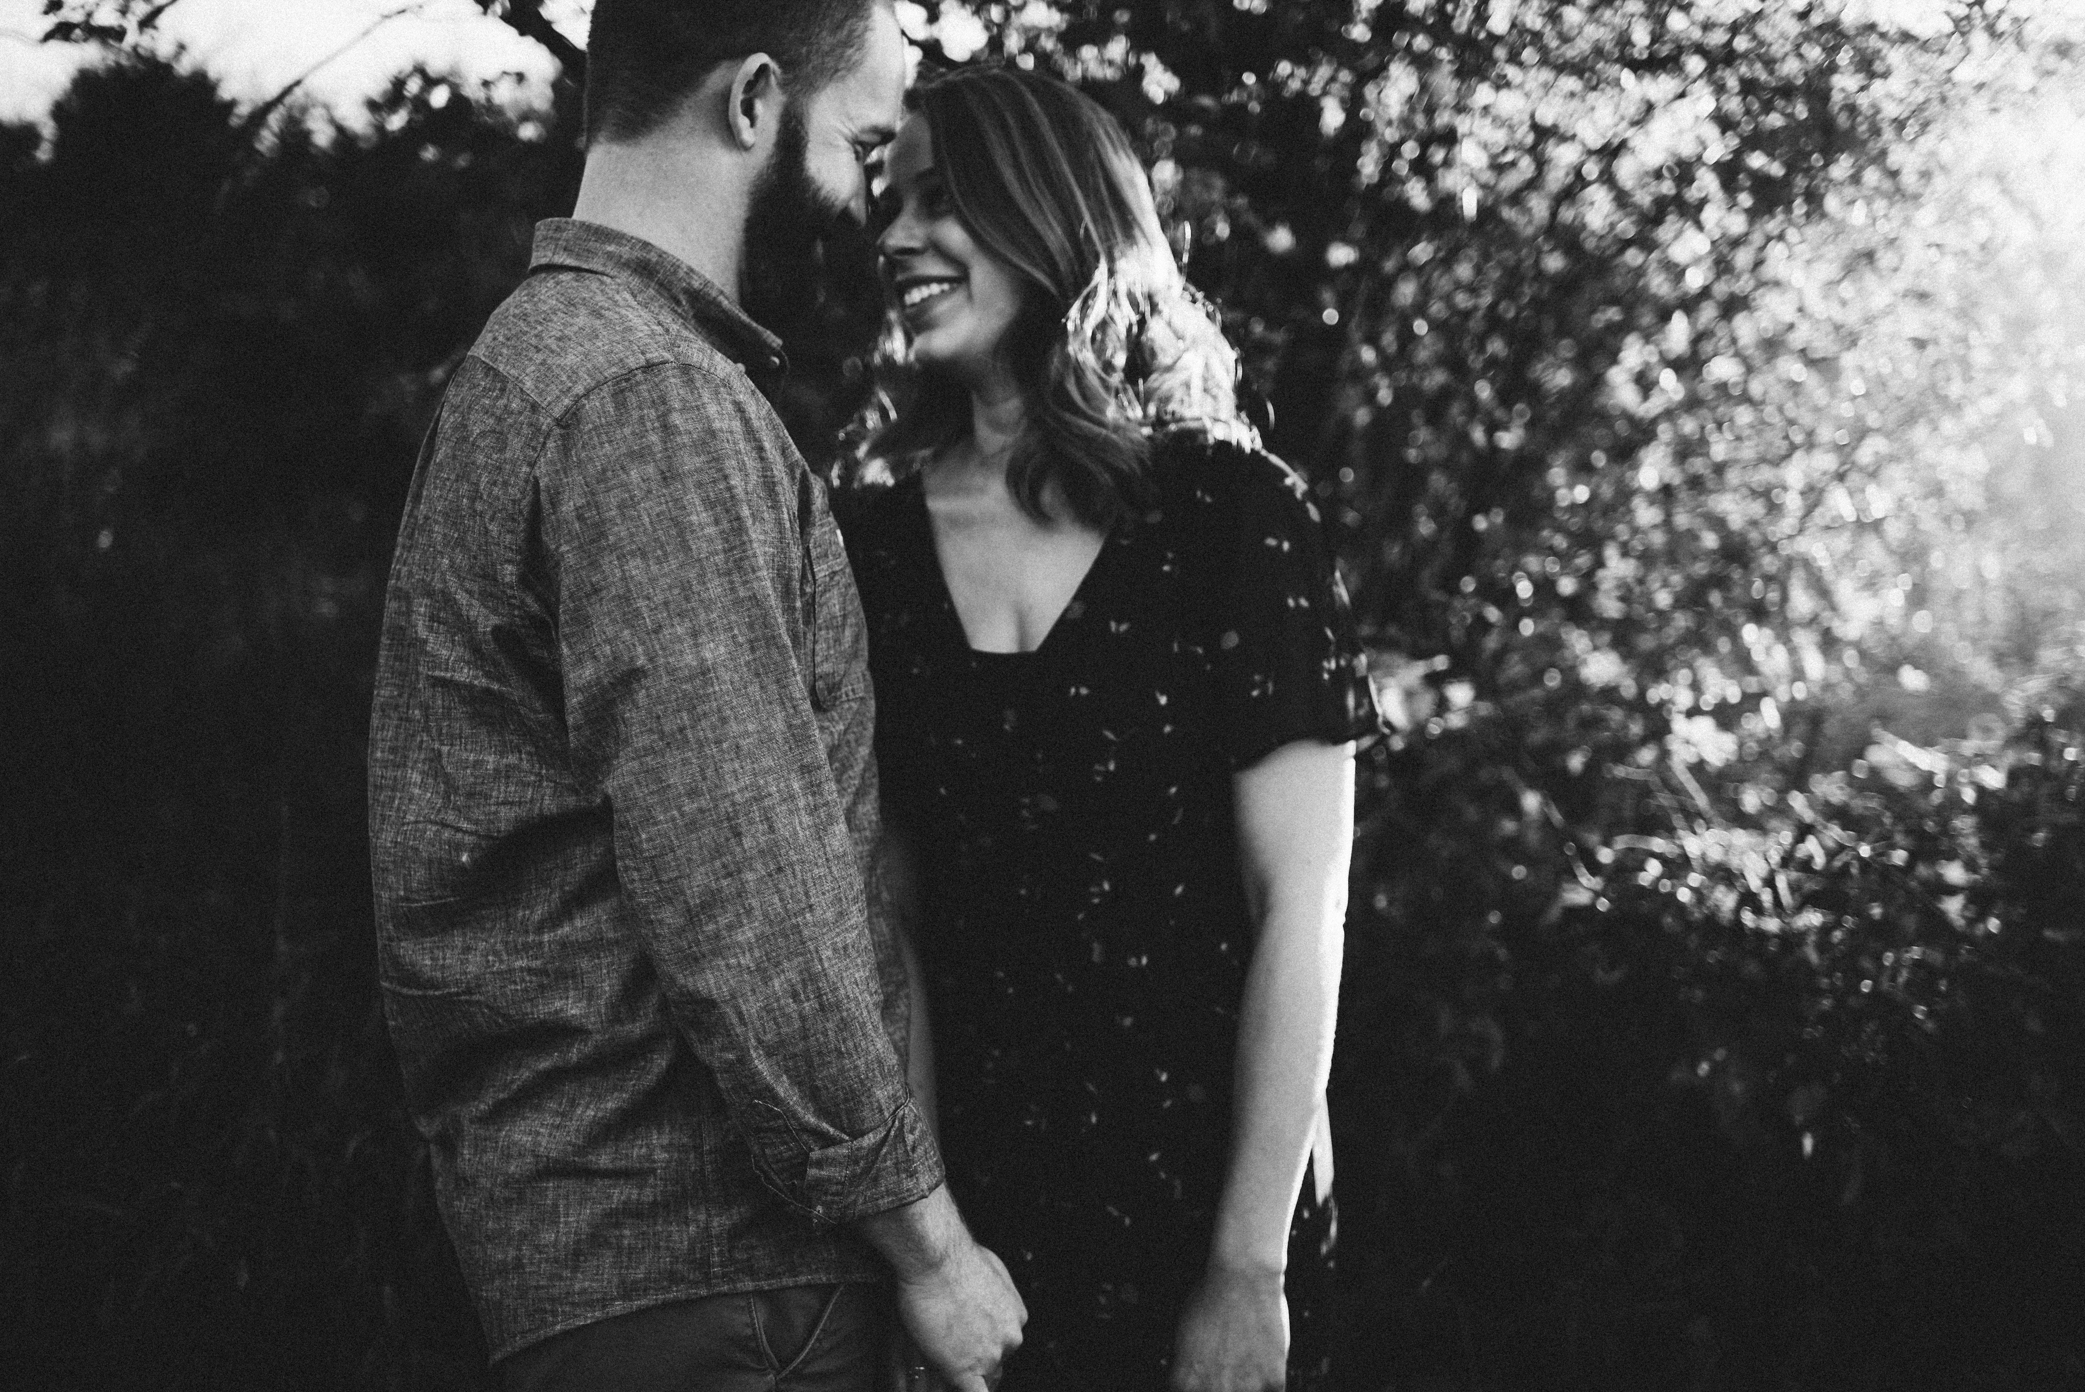 Molly and Zach Engagement Session - Fall Autumn Sunset Couple Adventure Session - Shenandoah National Park - Blue Ridge Parkway Skyline Drive - White Sails Creative_2.JPG